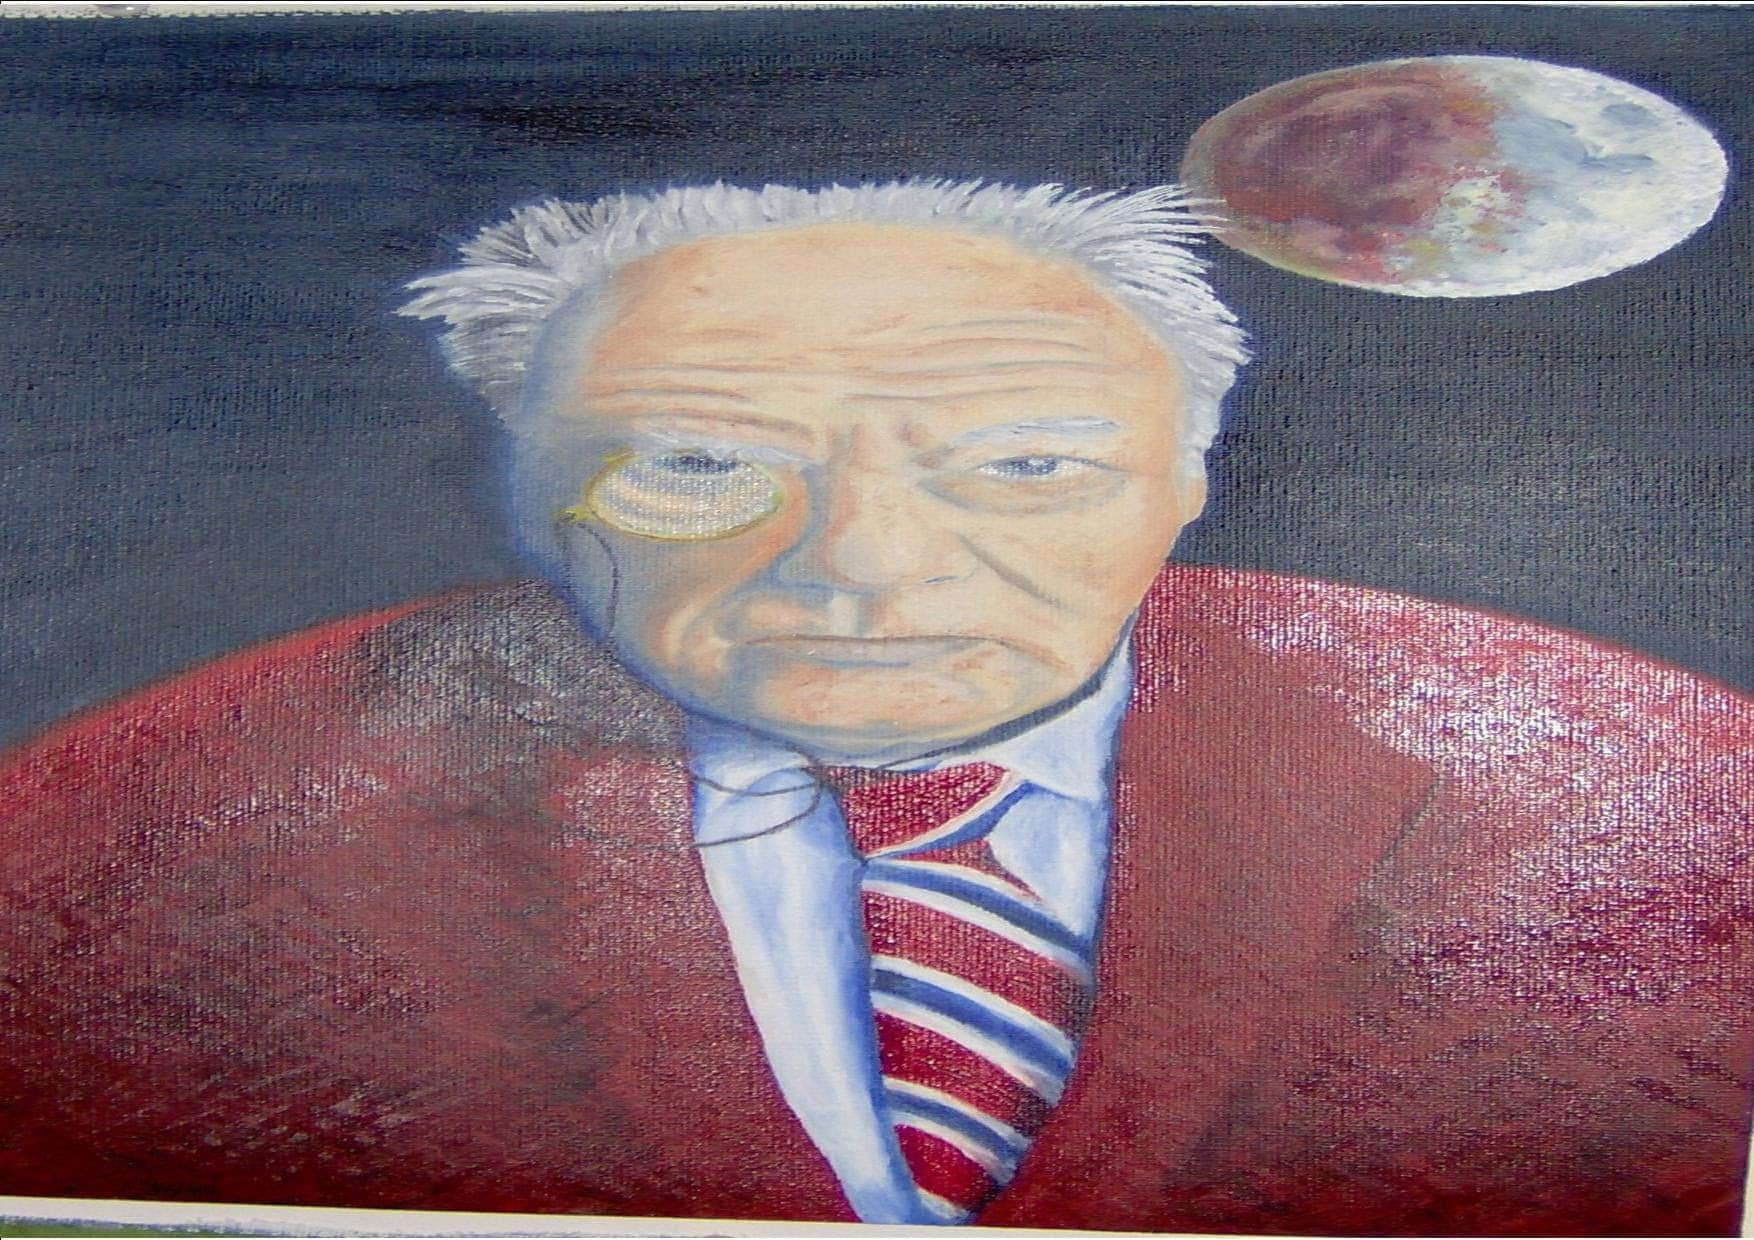 Tribute to Sir Patrick Moore who died today. 16